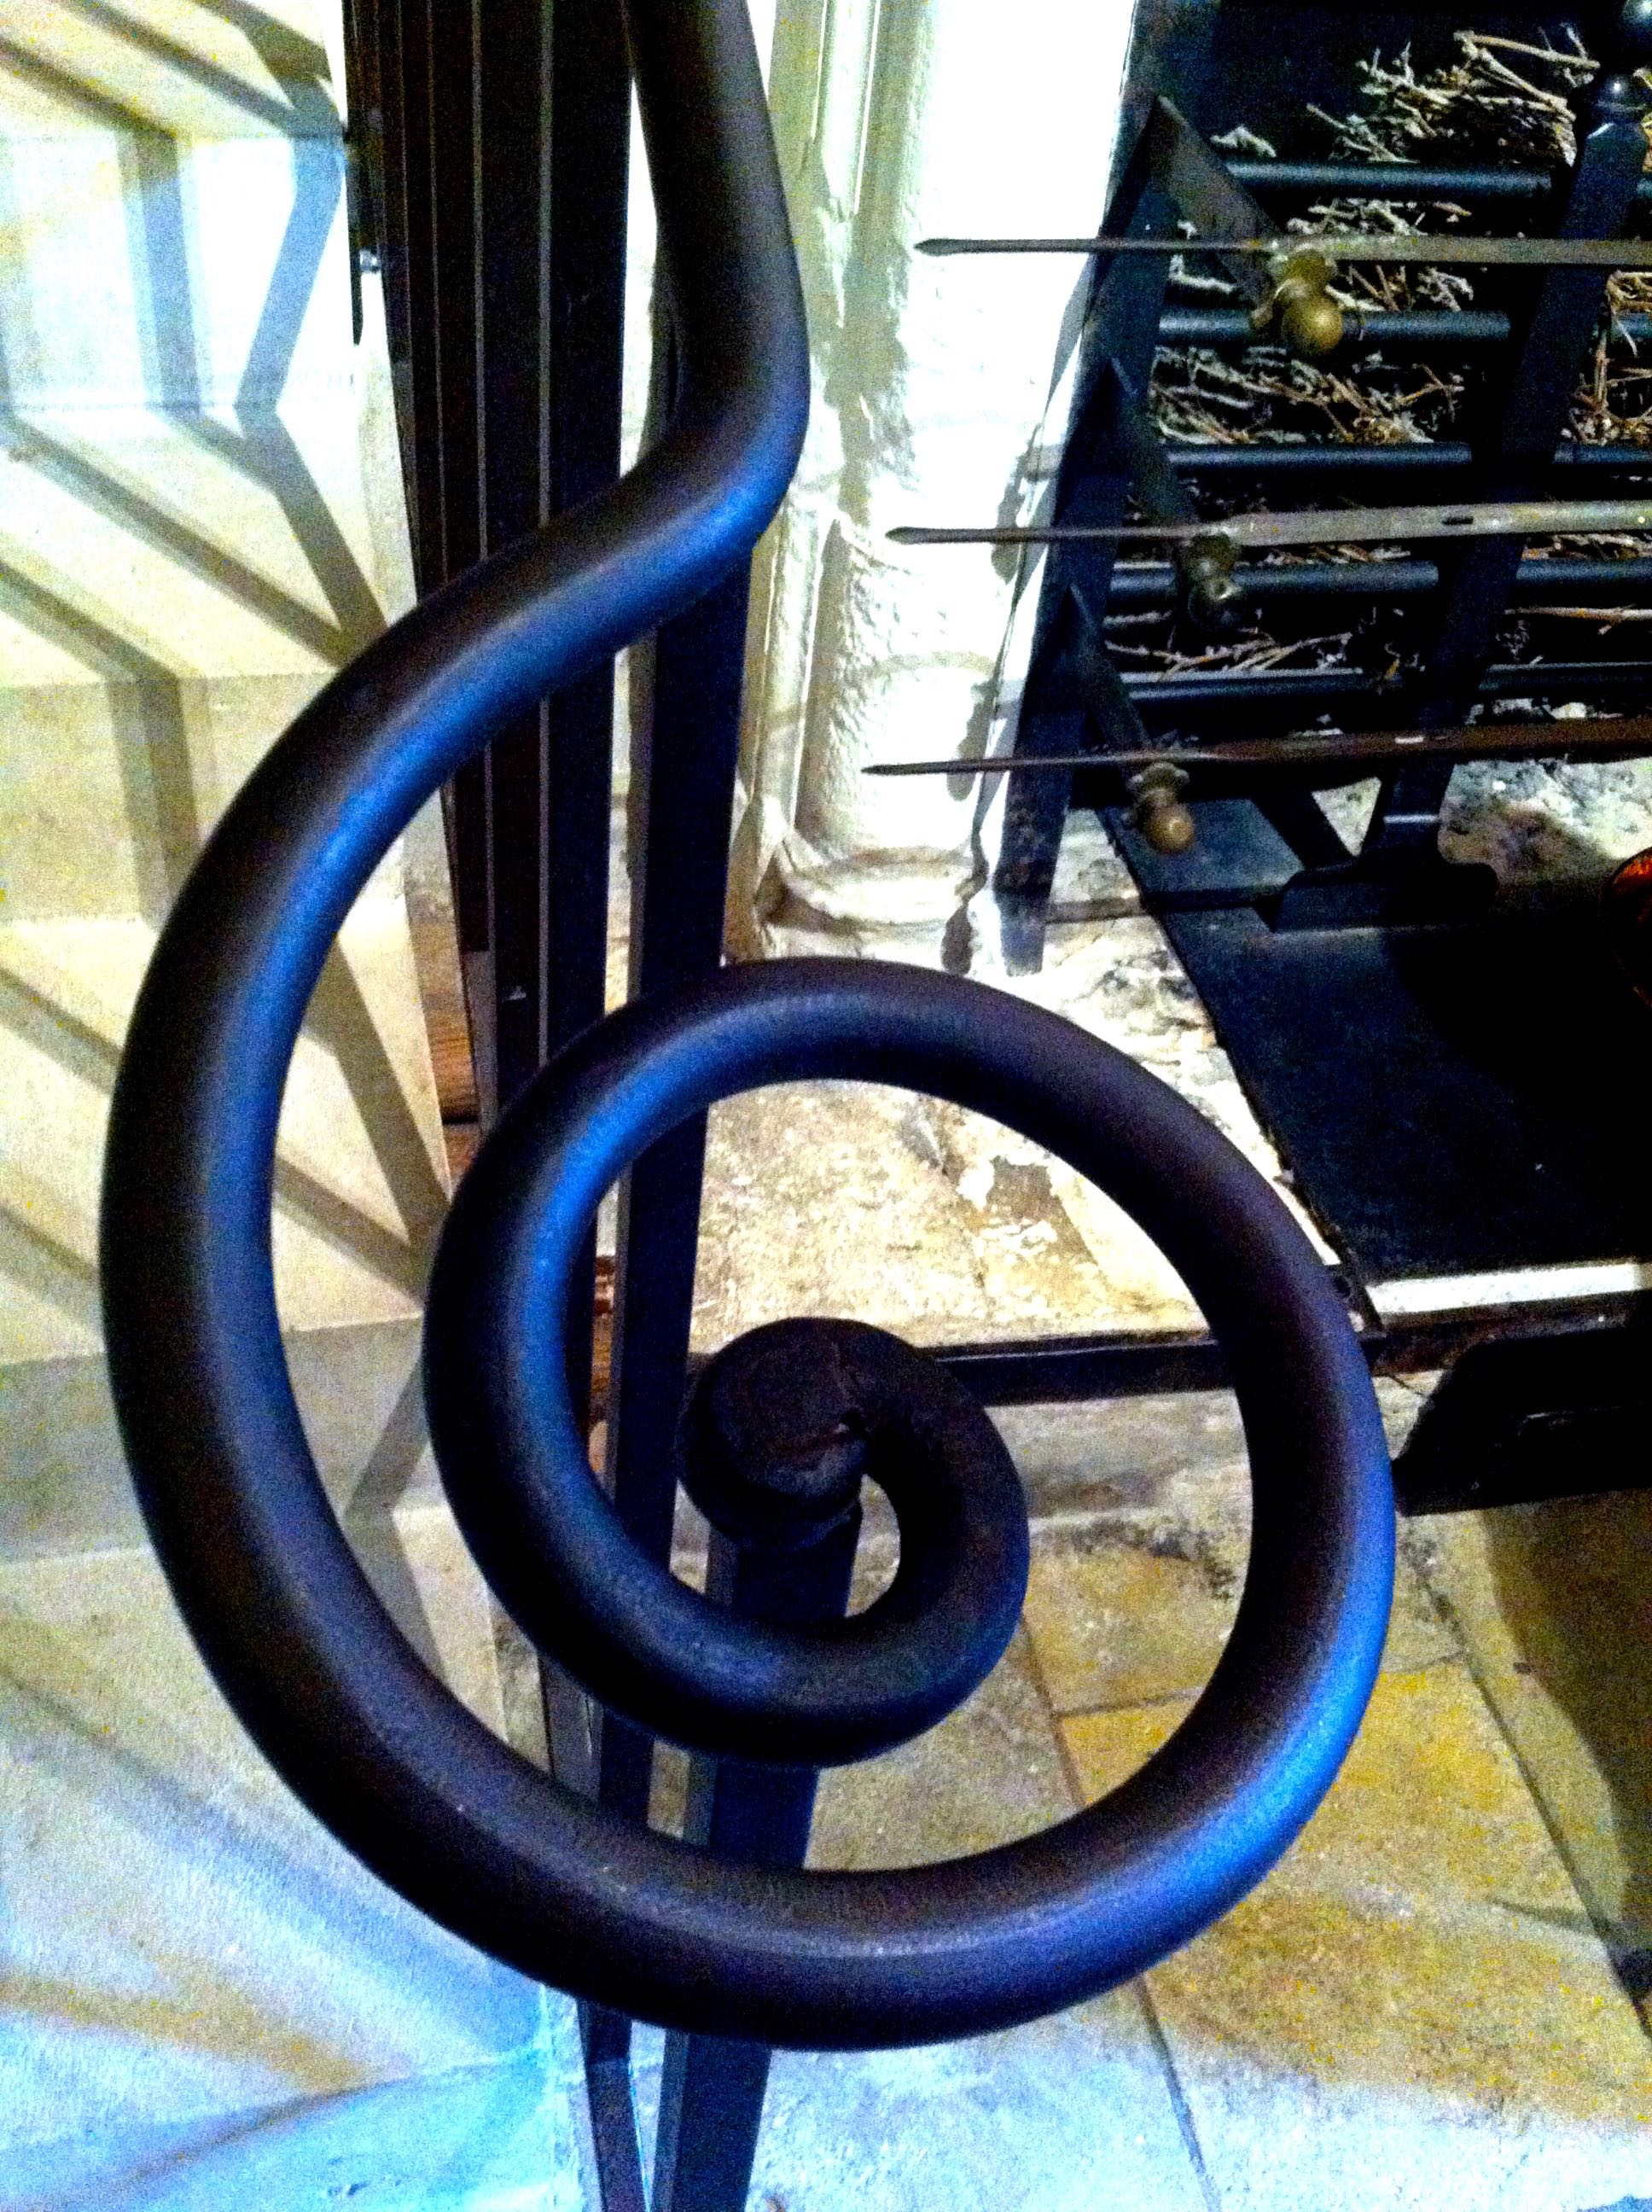 An iron hand rail in the kitchens at chenonceau